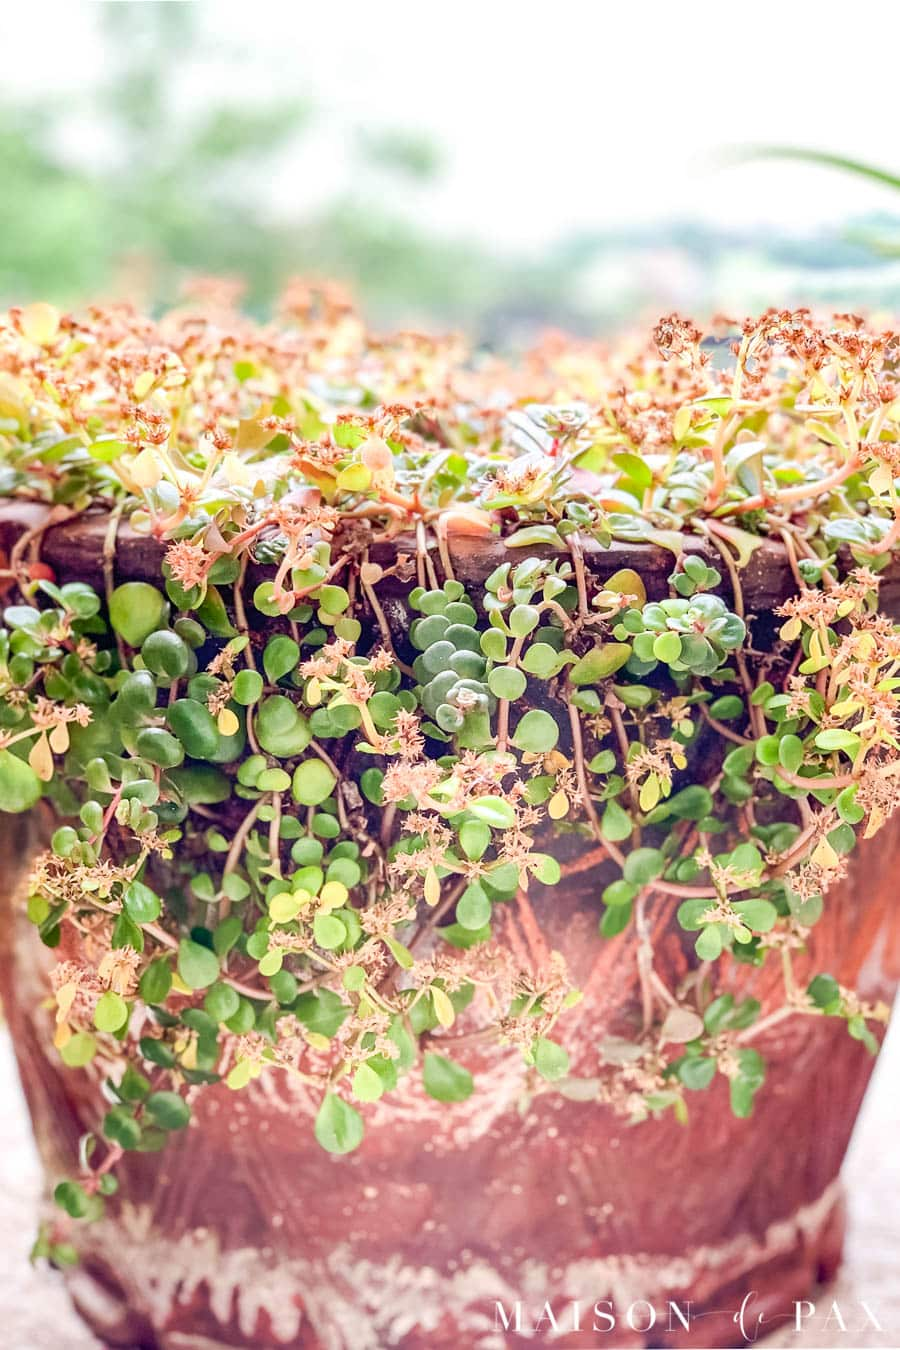 green and red succulent spilling over aged terra cotta pot | Maison de Pax